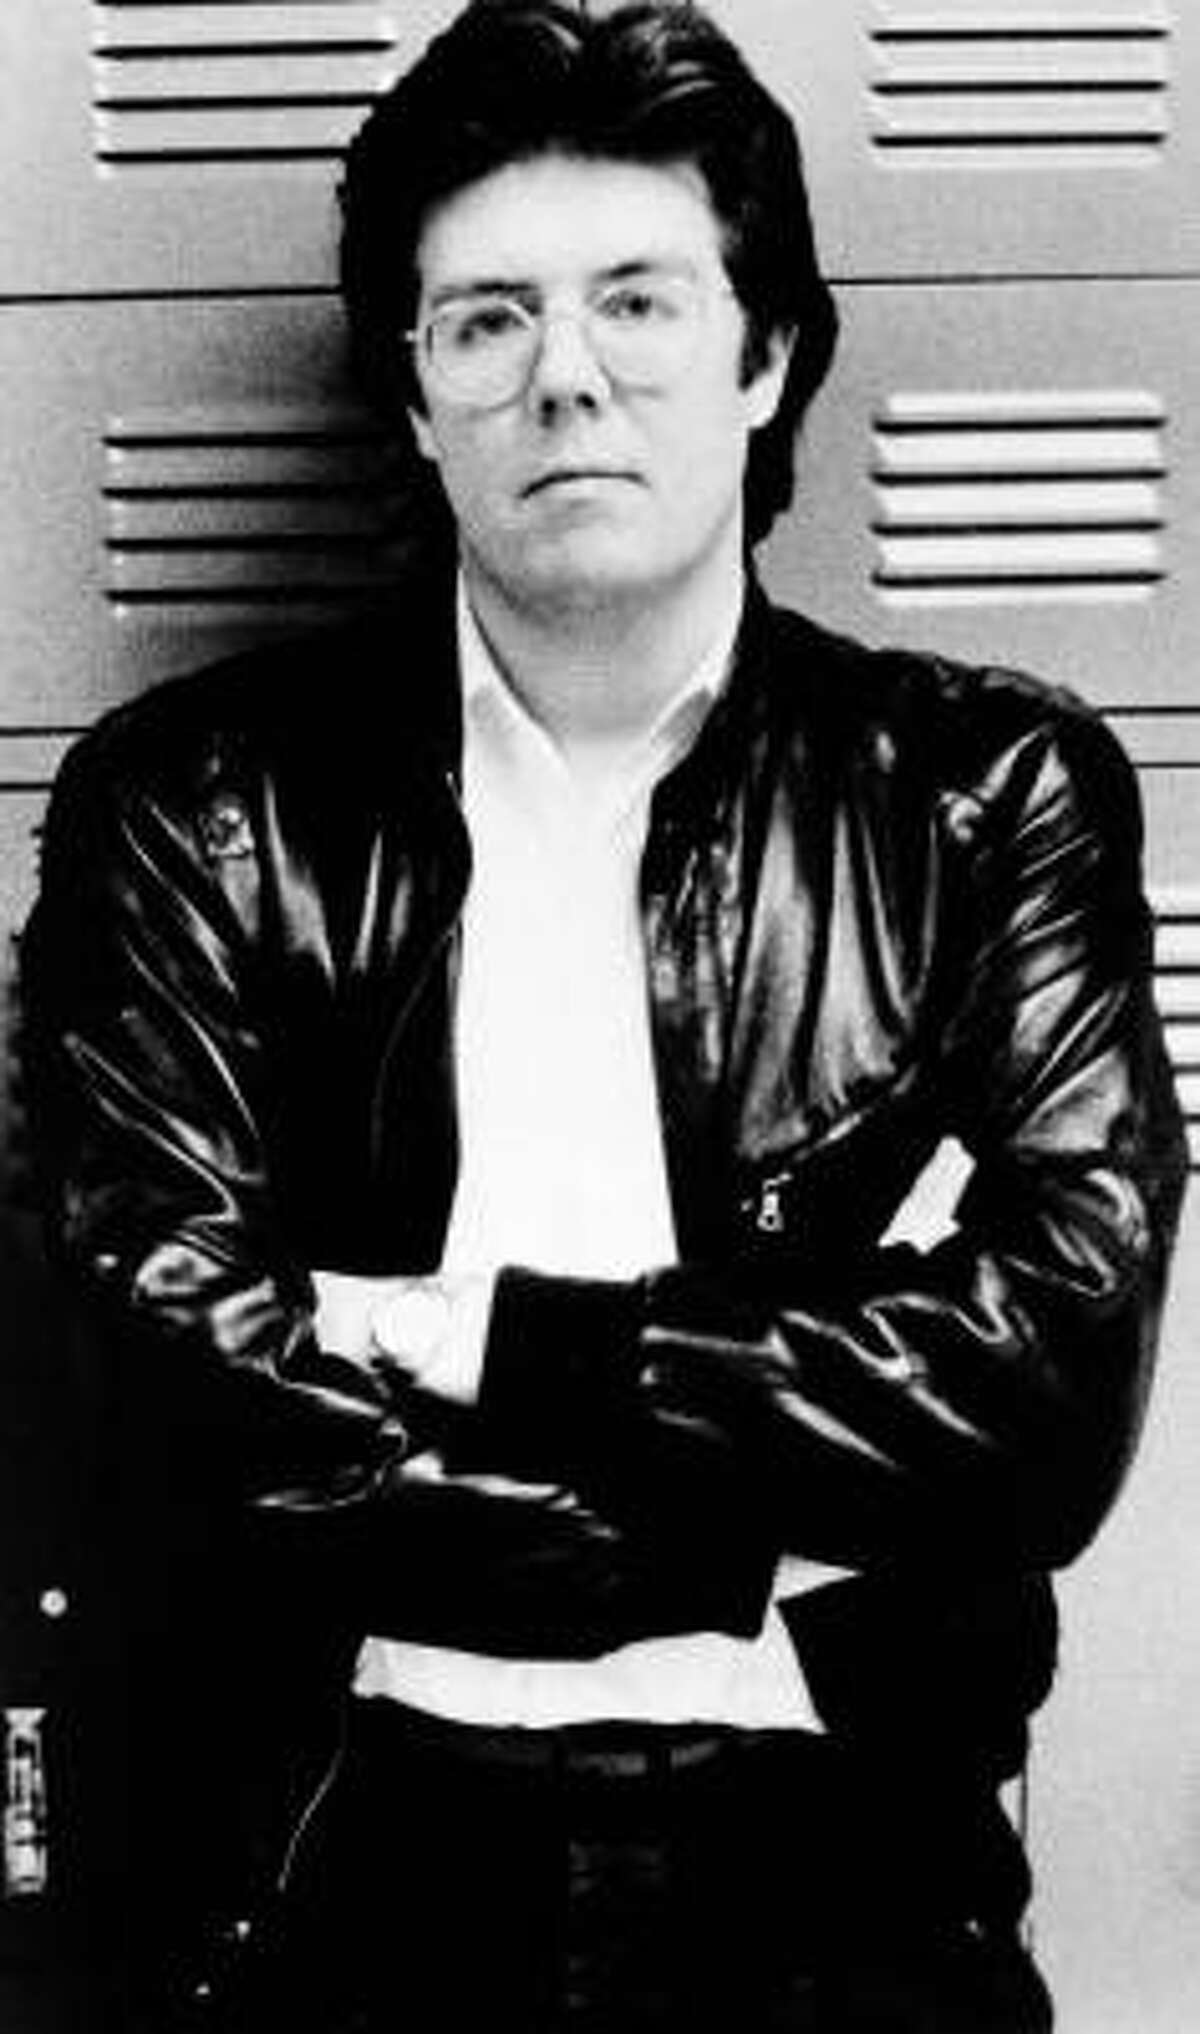 Director John Hughes in 1984. Hughes wrote and directed many of the classic 80's films such as